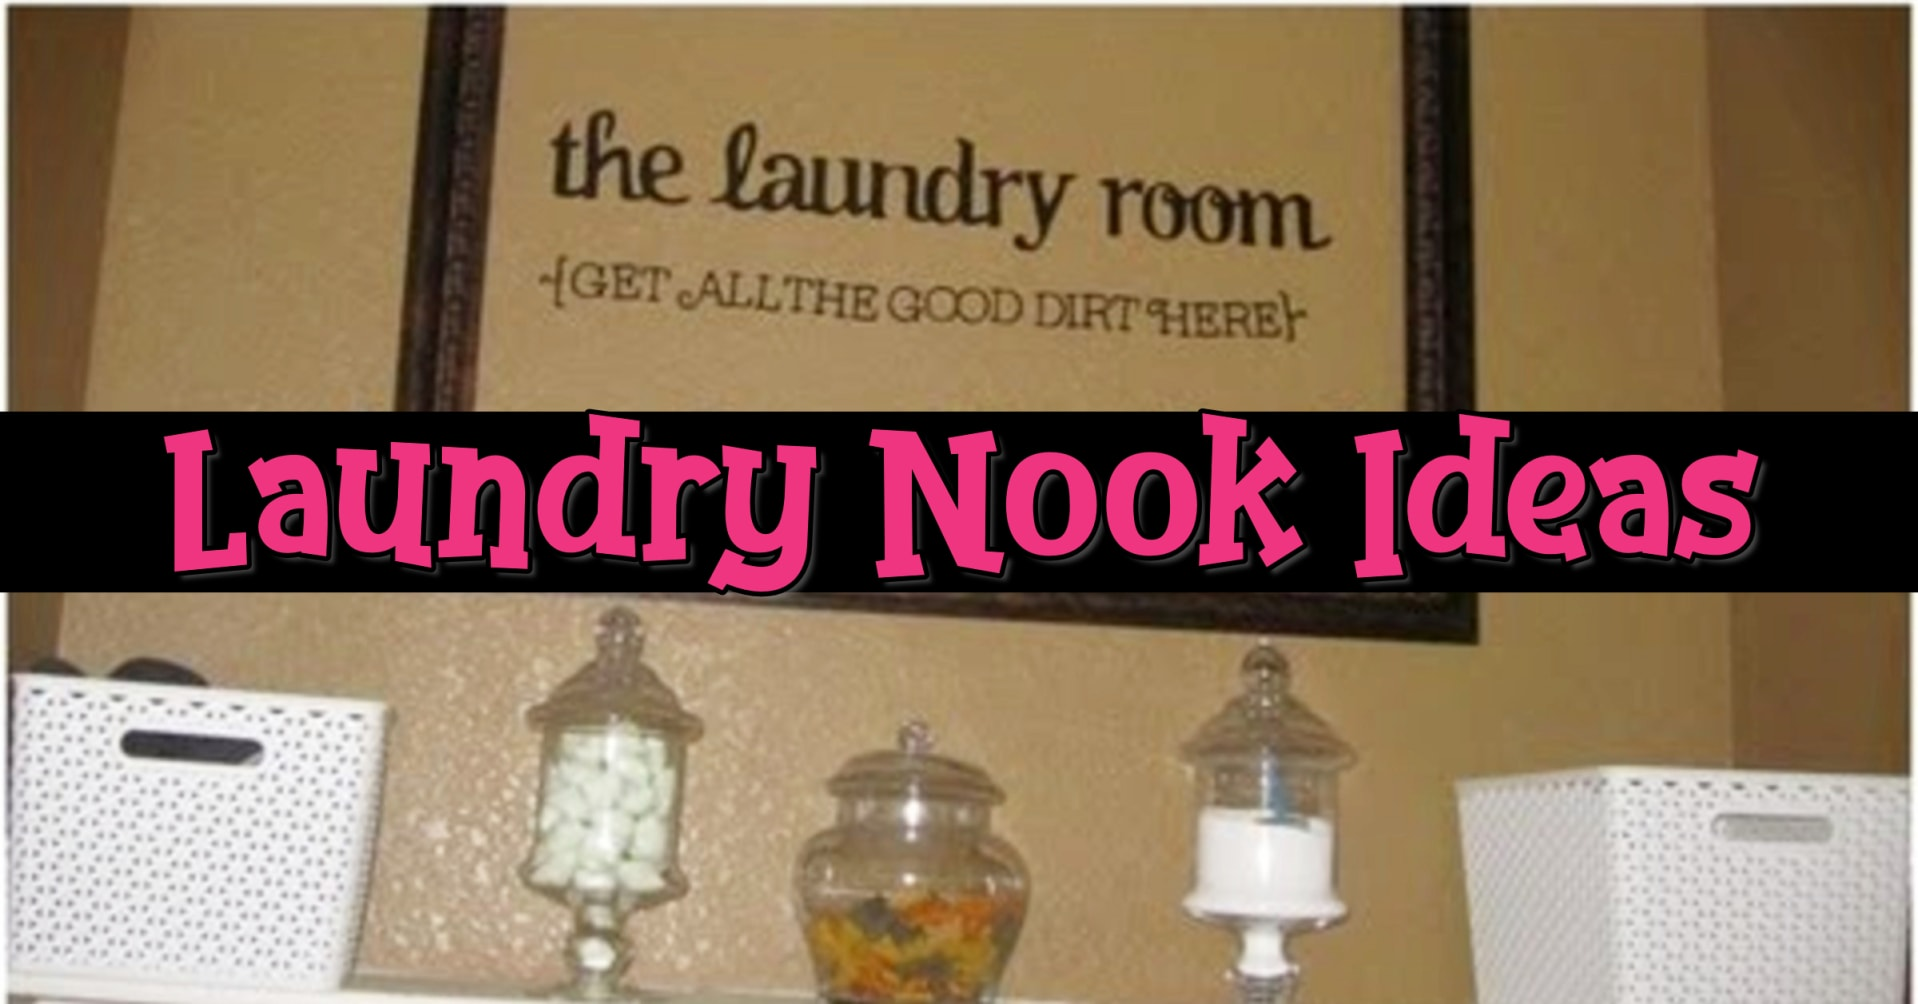 Laundry nook ideas - convert any area into a laundry nook laundry room